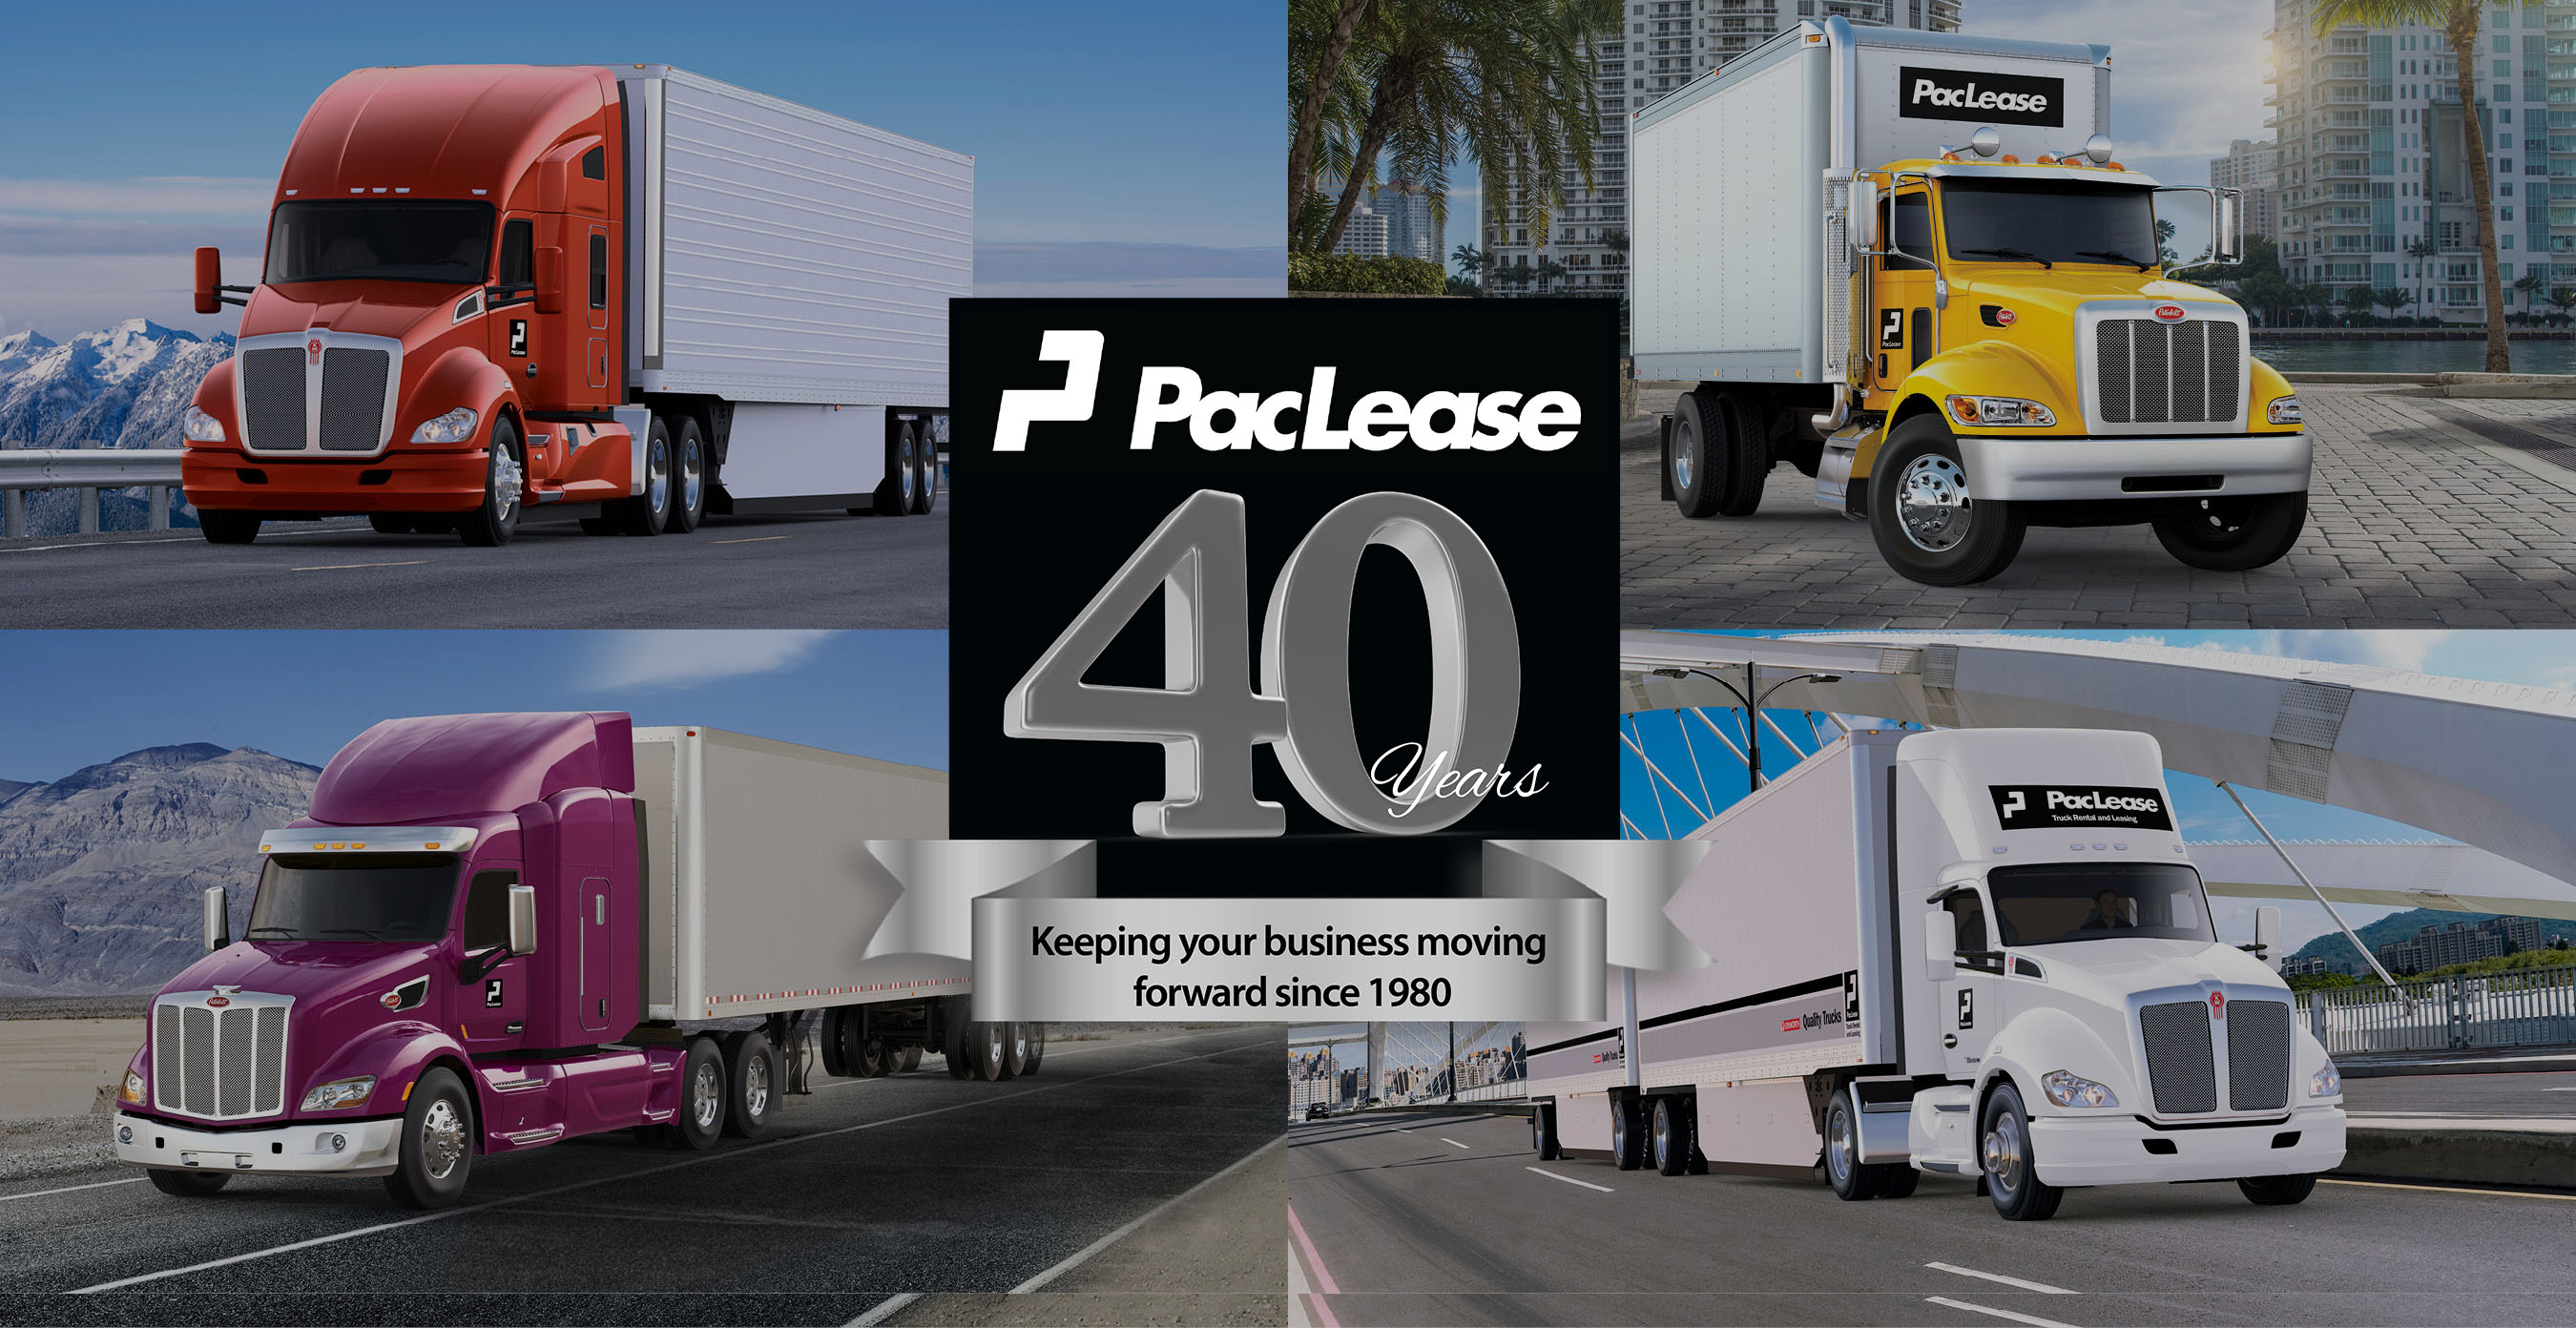 PacLease: Celebrating 40 Years of Service